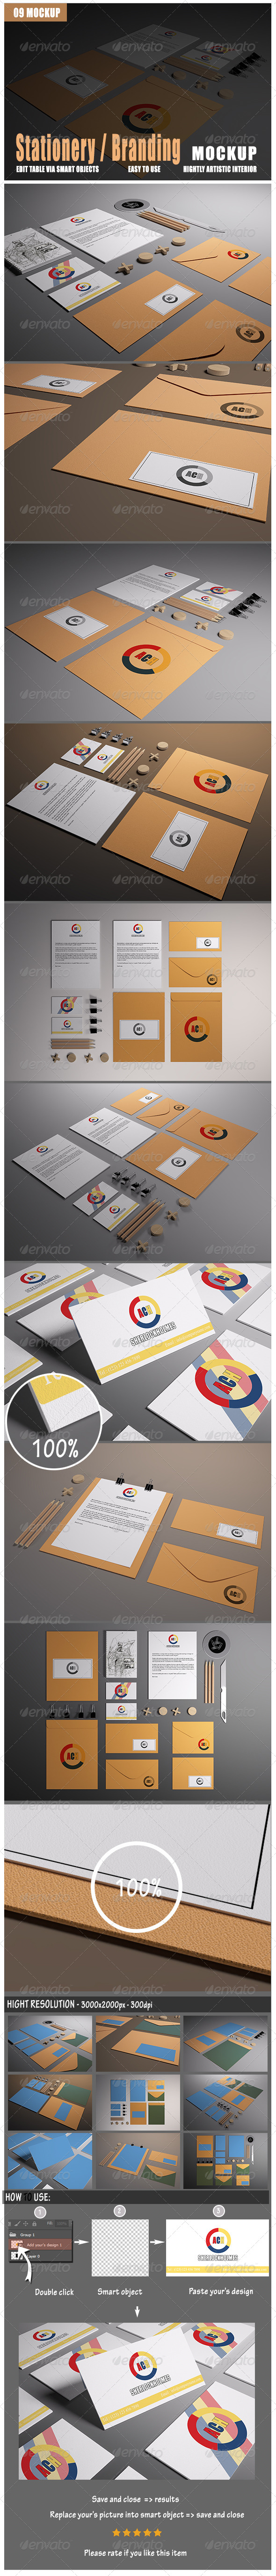 GraphicRiver Stationery Branding Mock-Up 8423739